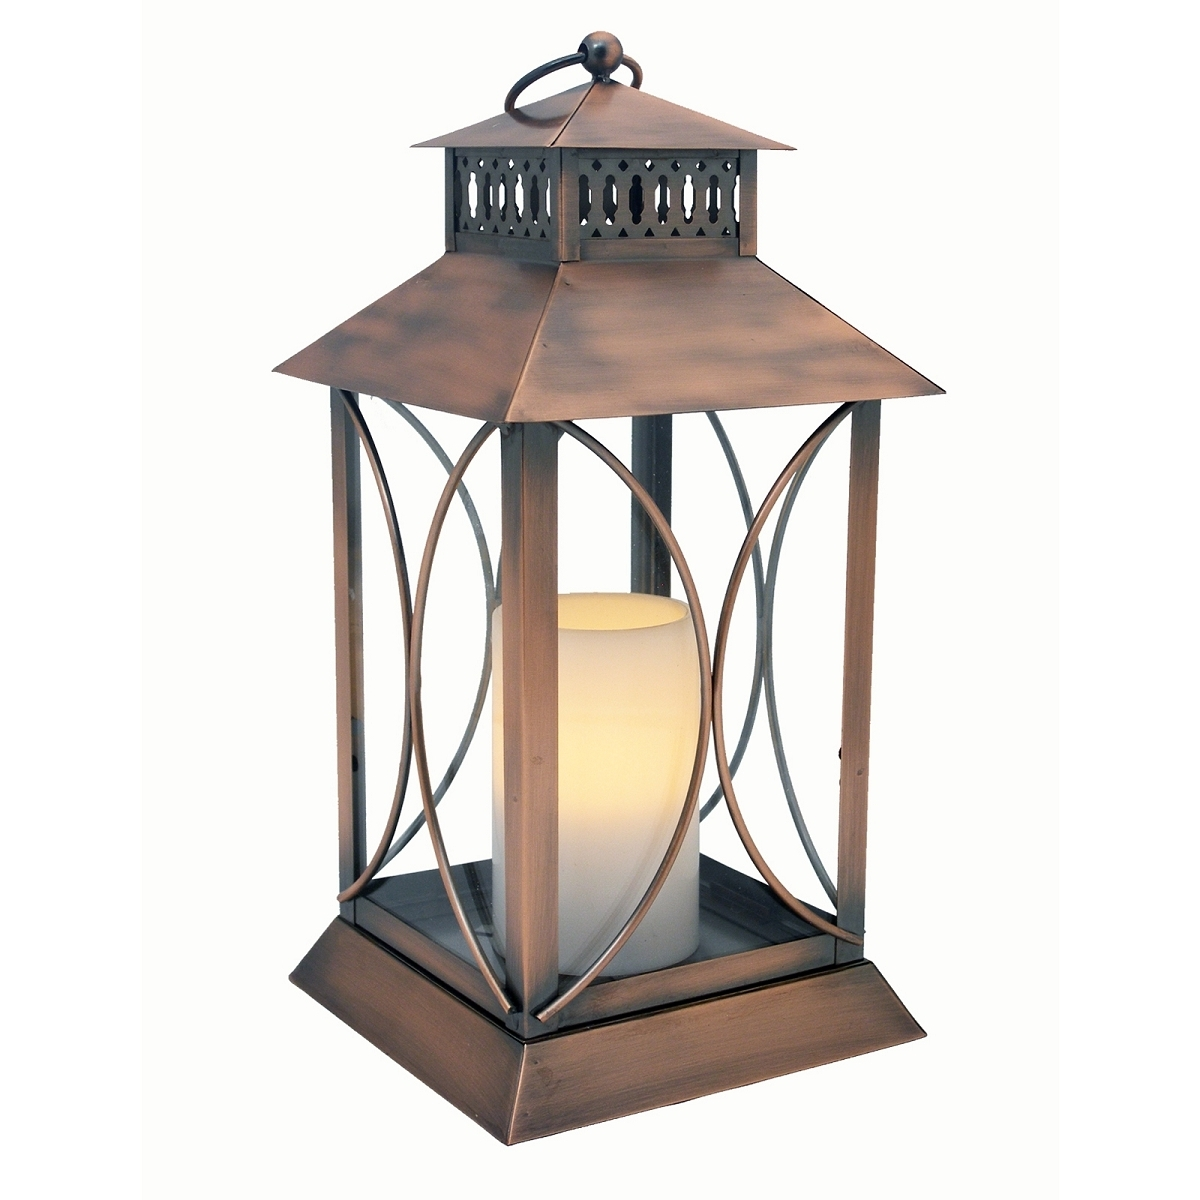 Indoor Outdoor Lanterns For 2018 Neuporte Flameless Candle Lantern With Timer Indoor Outdoor (View 7 of 20)